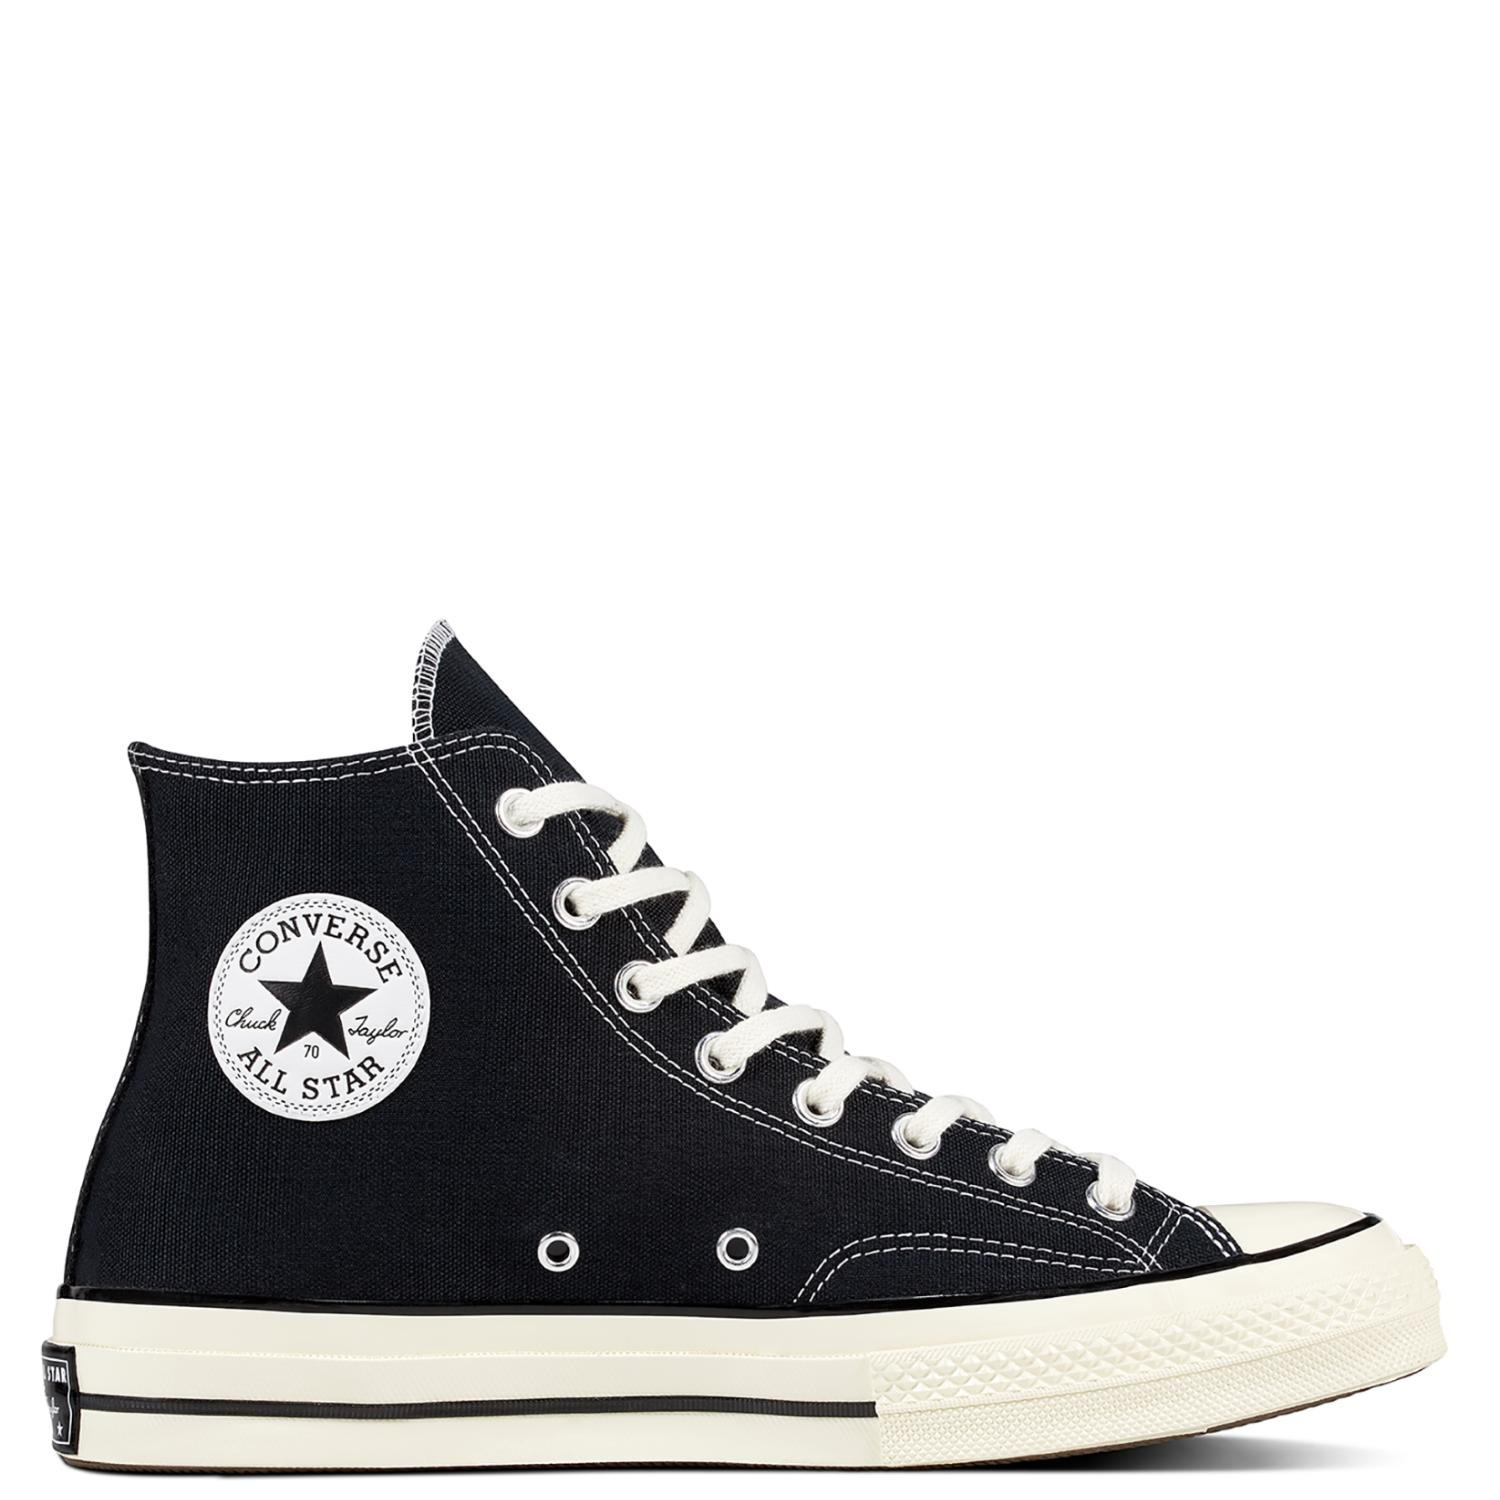 f27ab6c978 Converse Philippines  Converse price list - Shoes for Men   Women ...